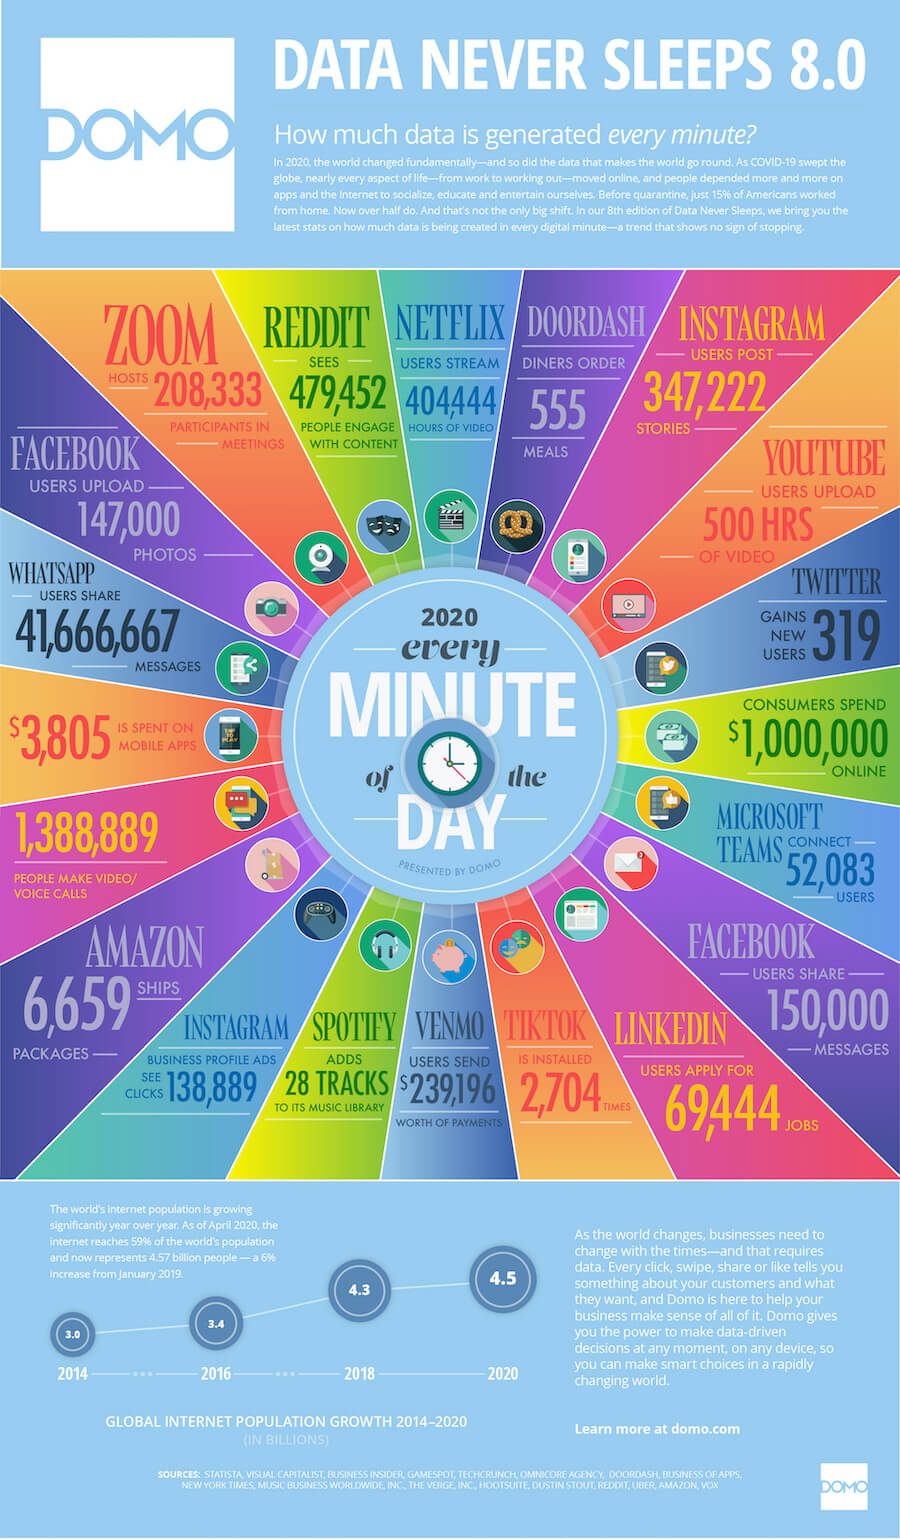 Data Never Sleeps 8.0 - how much data is generated every minute?